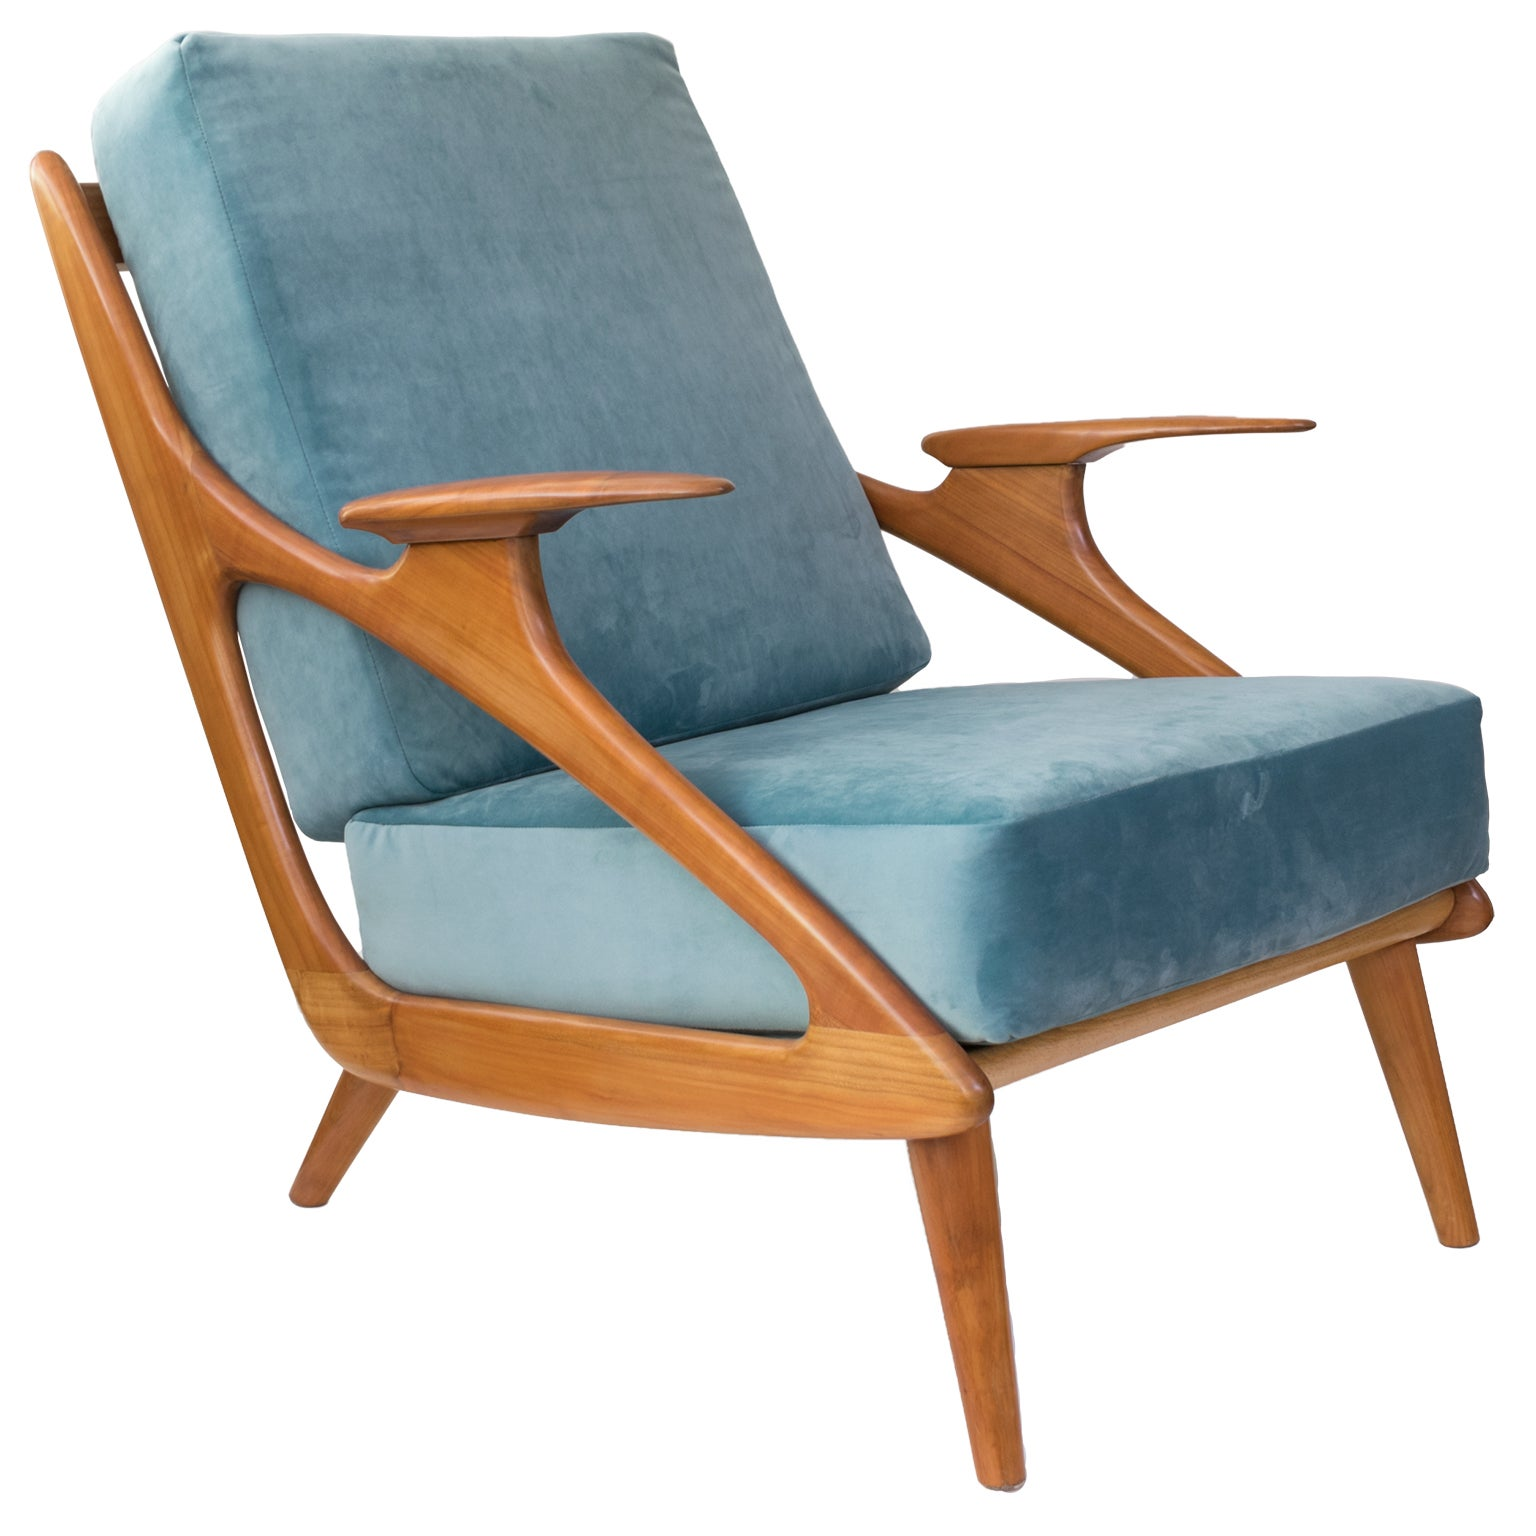 Dutch Mid-Century Modern Carved Cherry Armchair by B. Spuij's